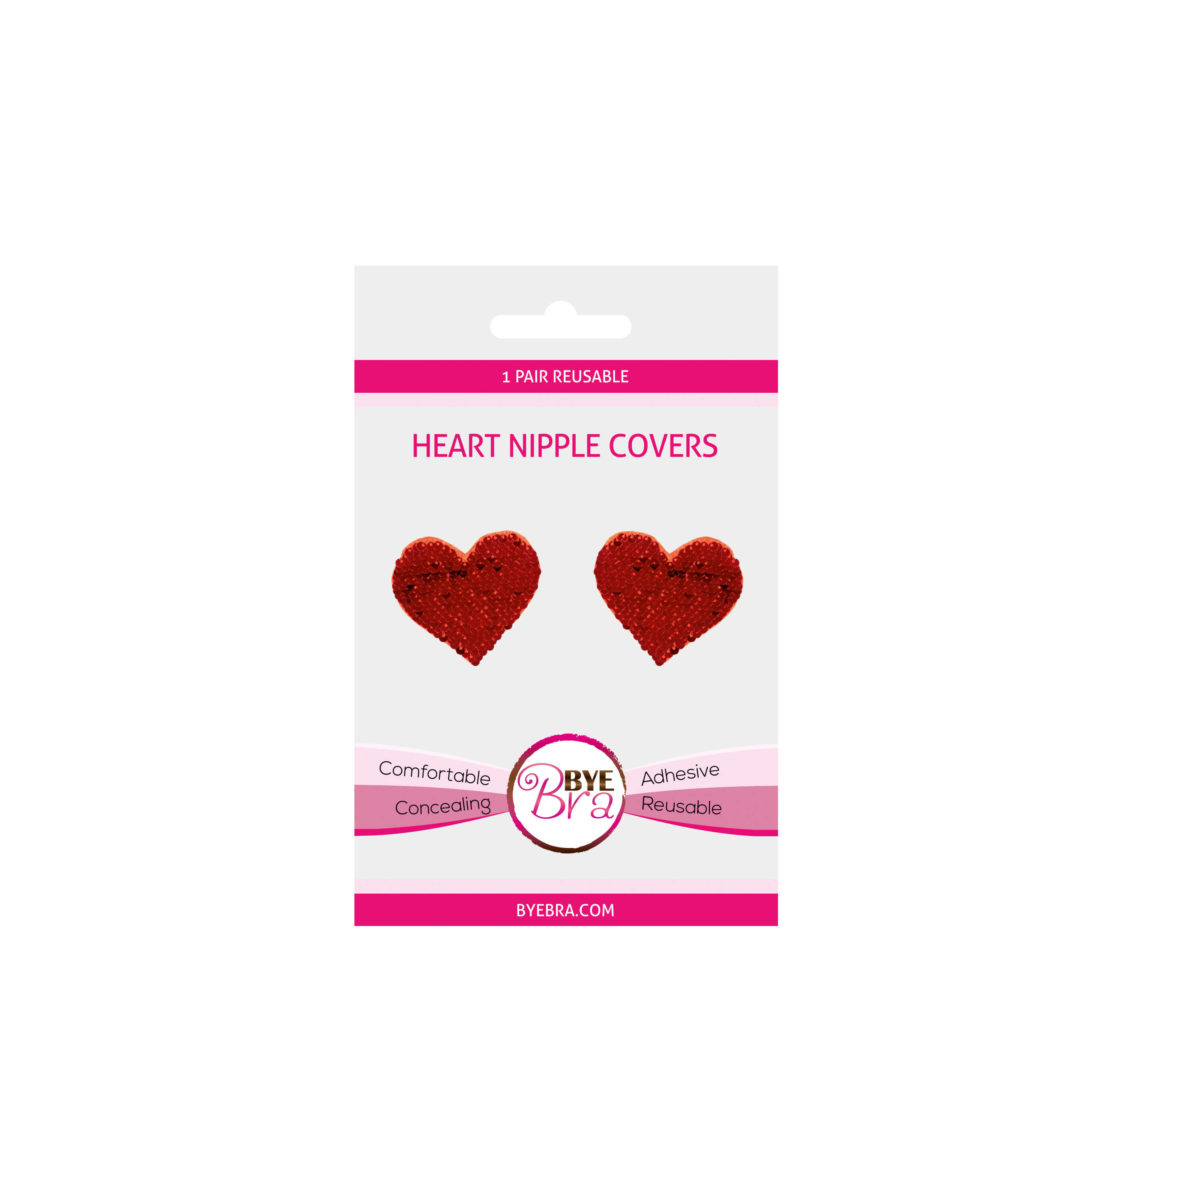 Byebra Heart nipple covers